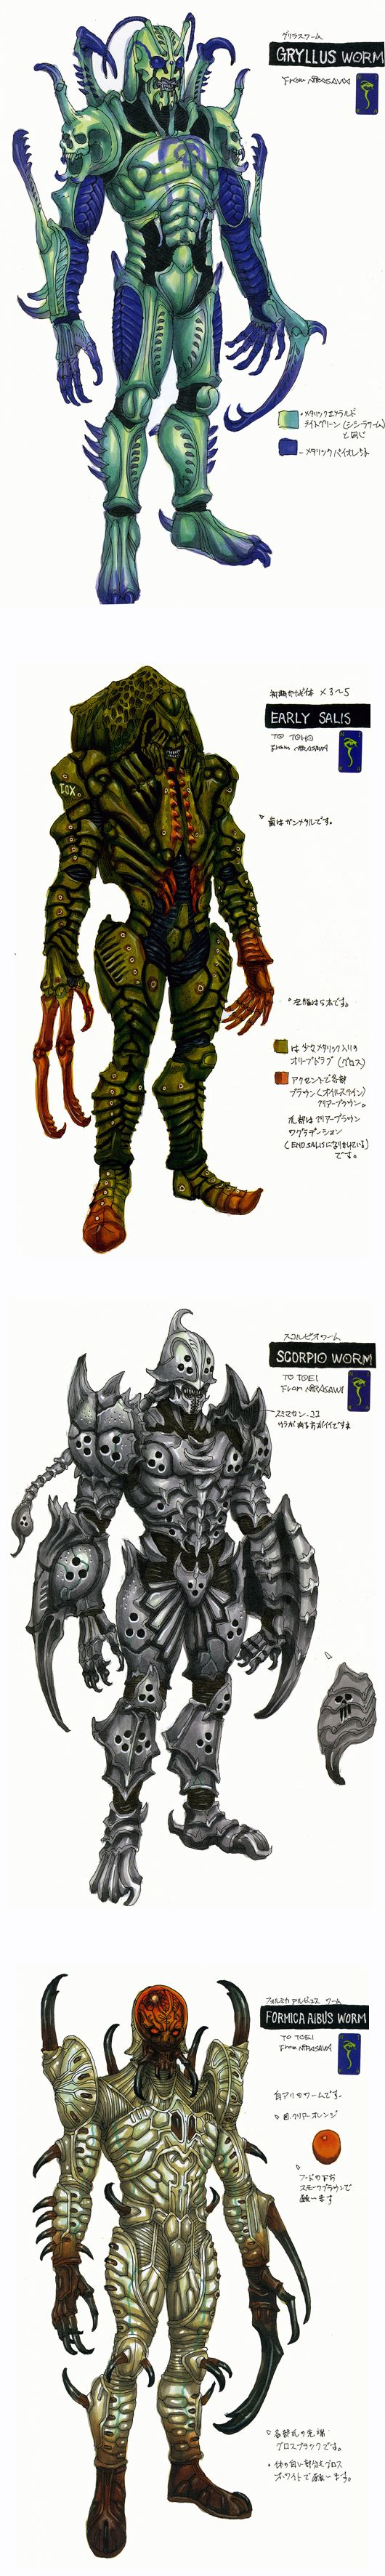 Monster design of the Masked Rider of Mr. Yasushi Nirasawa.